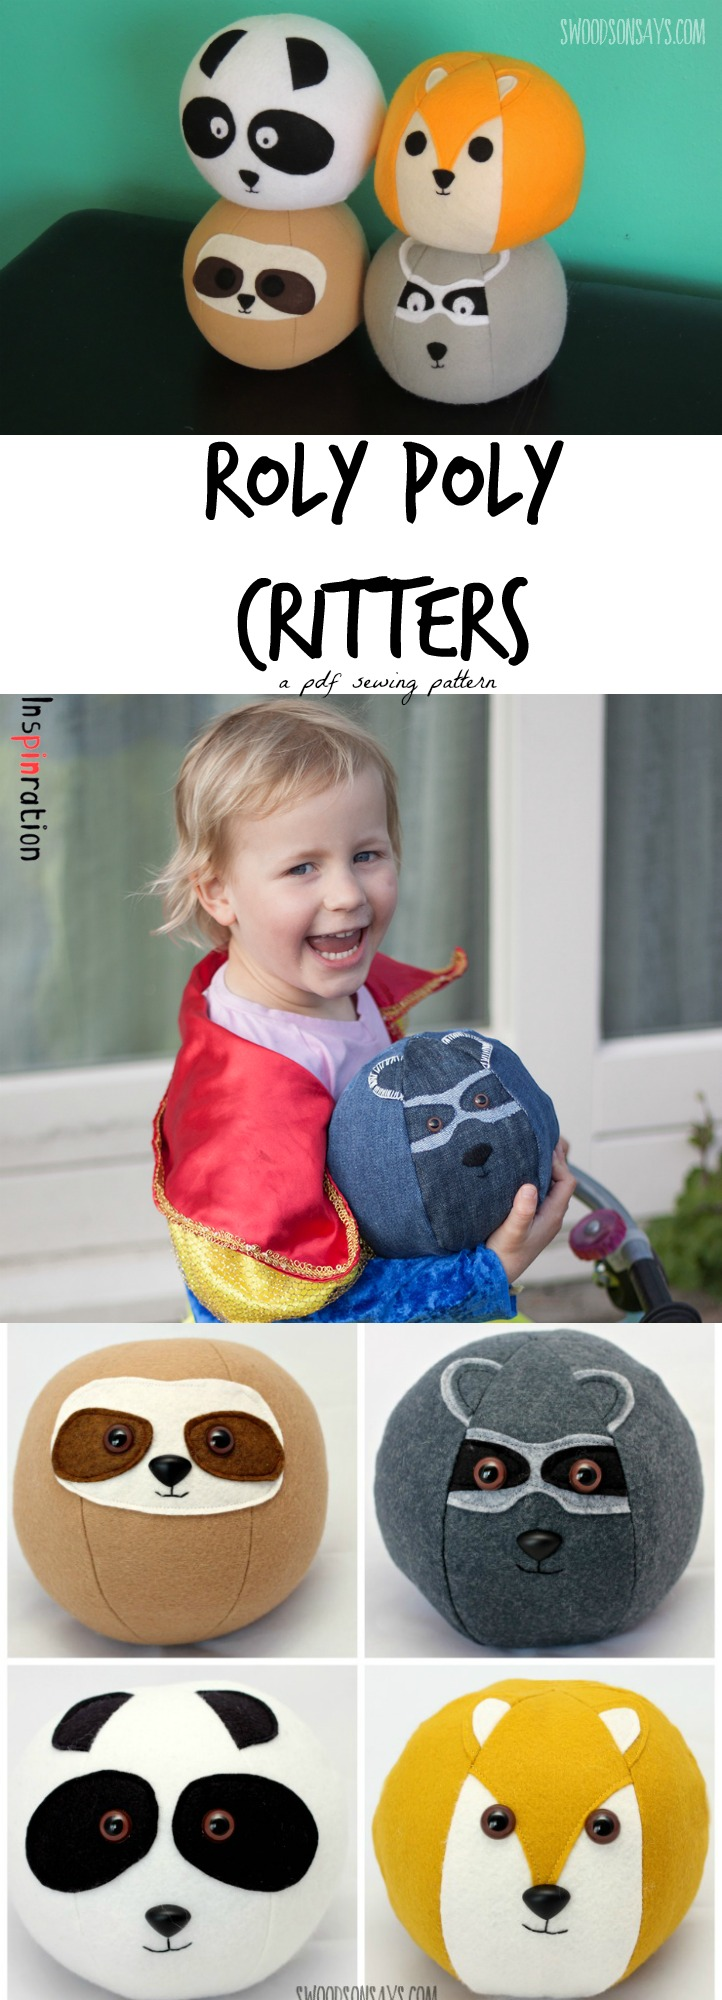 roly poly critters pdf sewing pattern